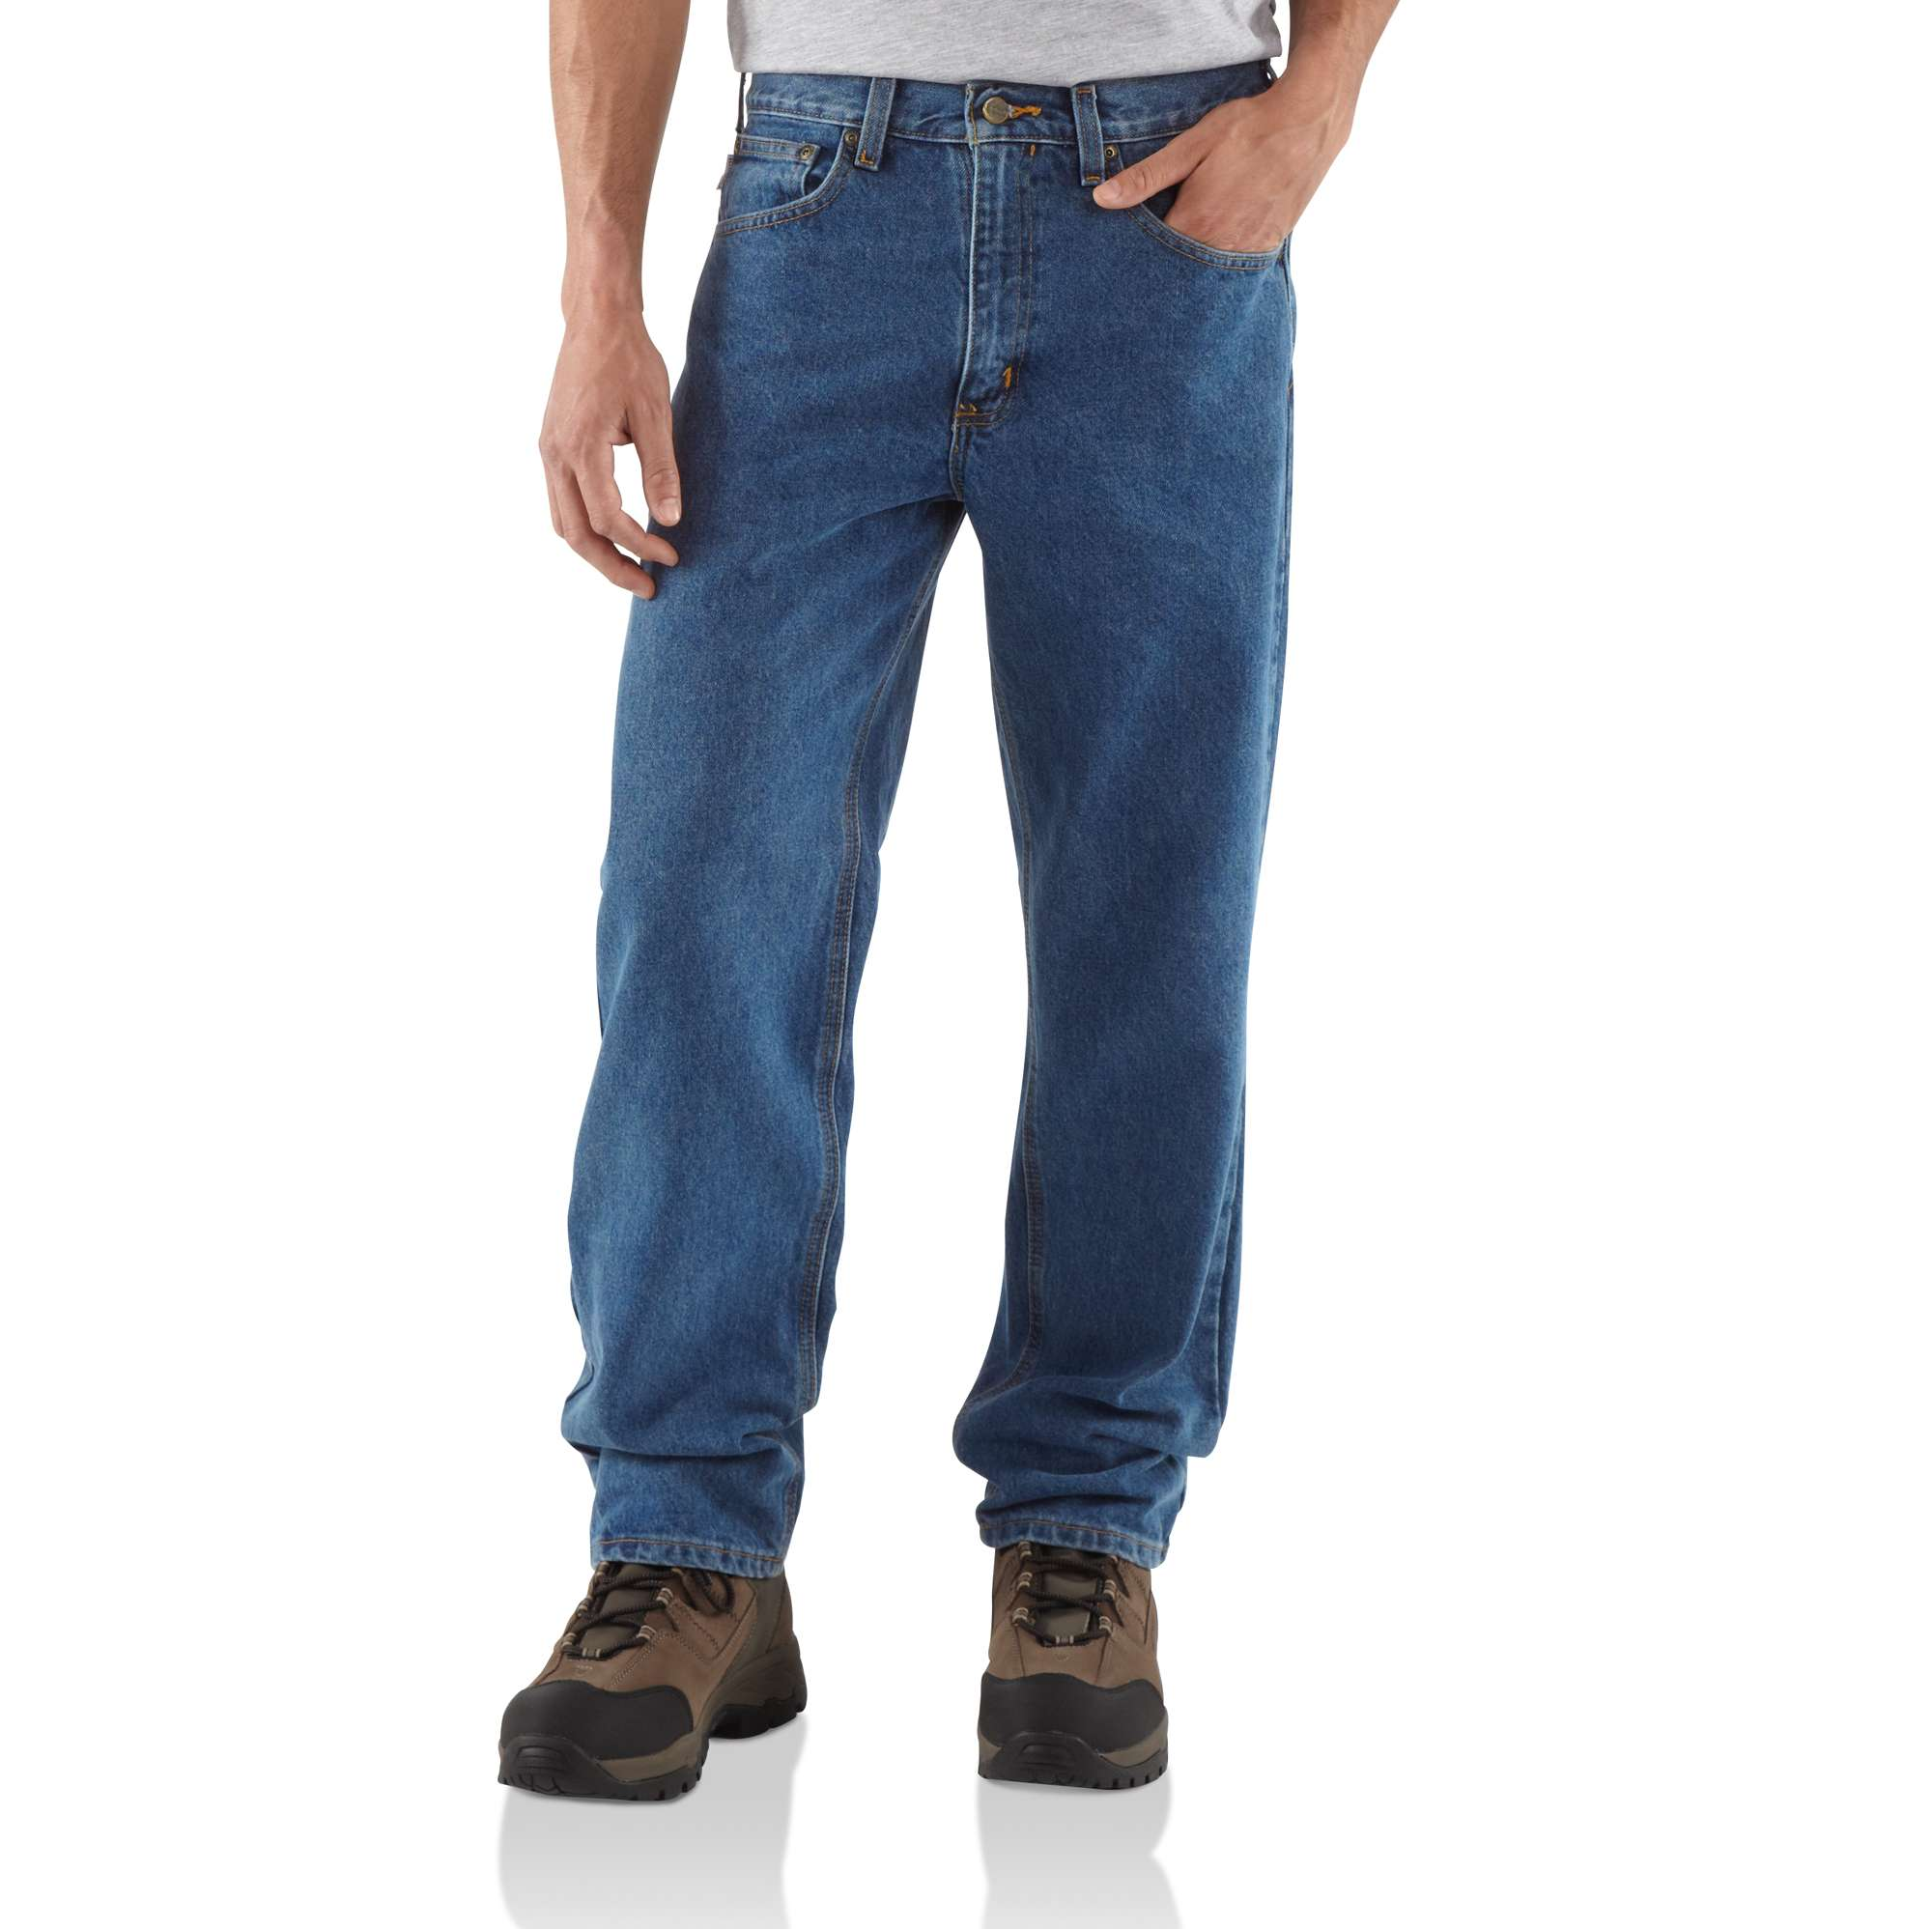 Carhartt Men's Relaxed Fit Jean